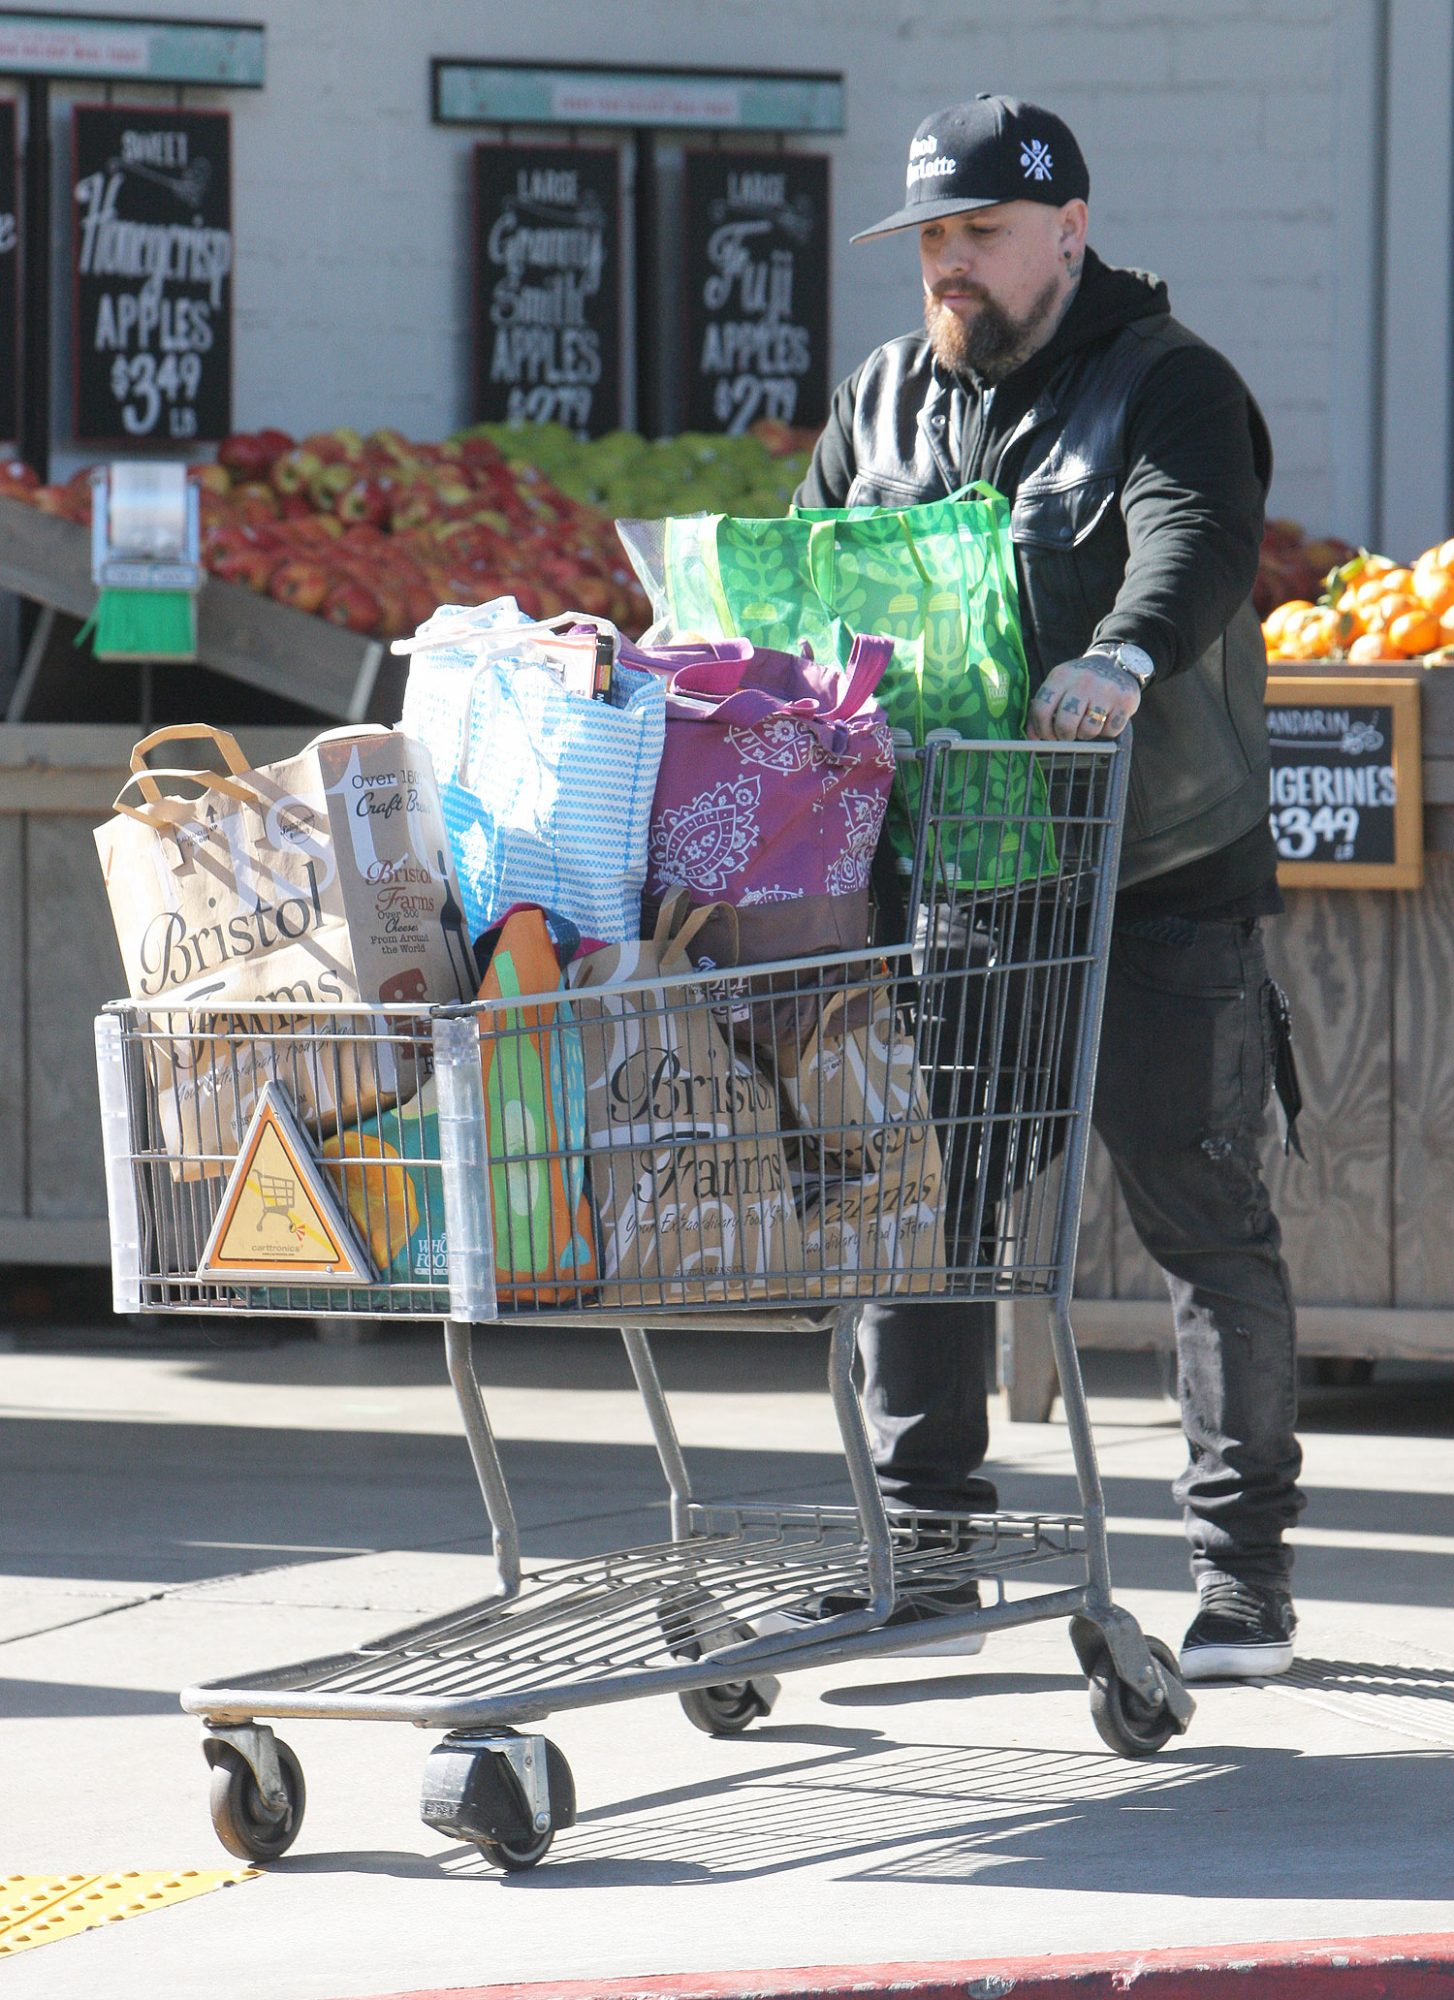 Cameron Diaz and Benji Madden leave Bristol Farms after grocery shopping